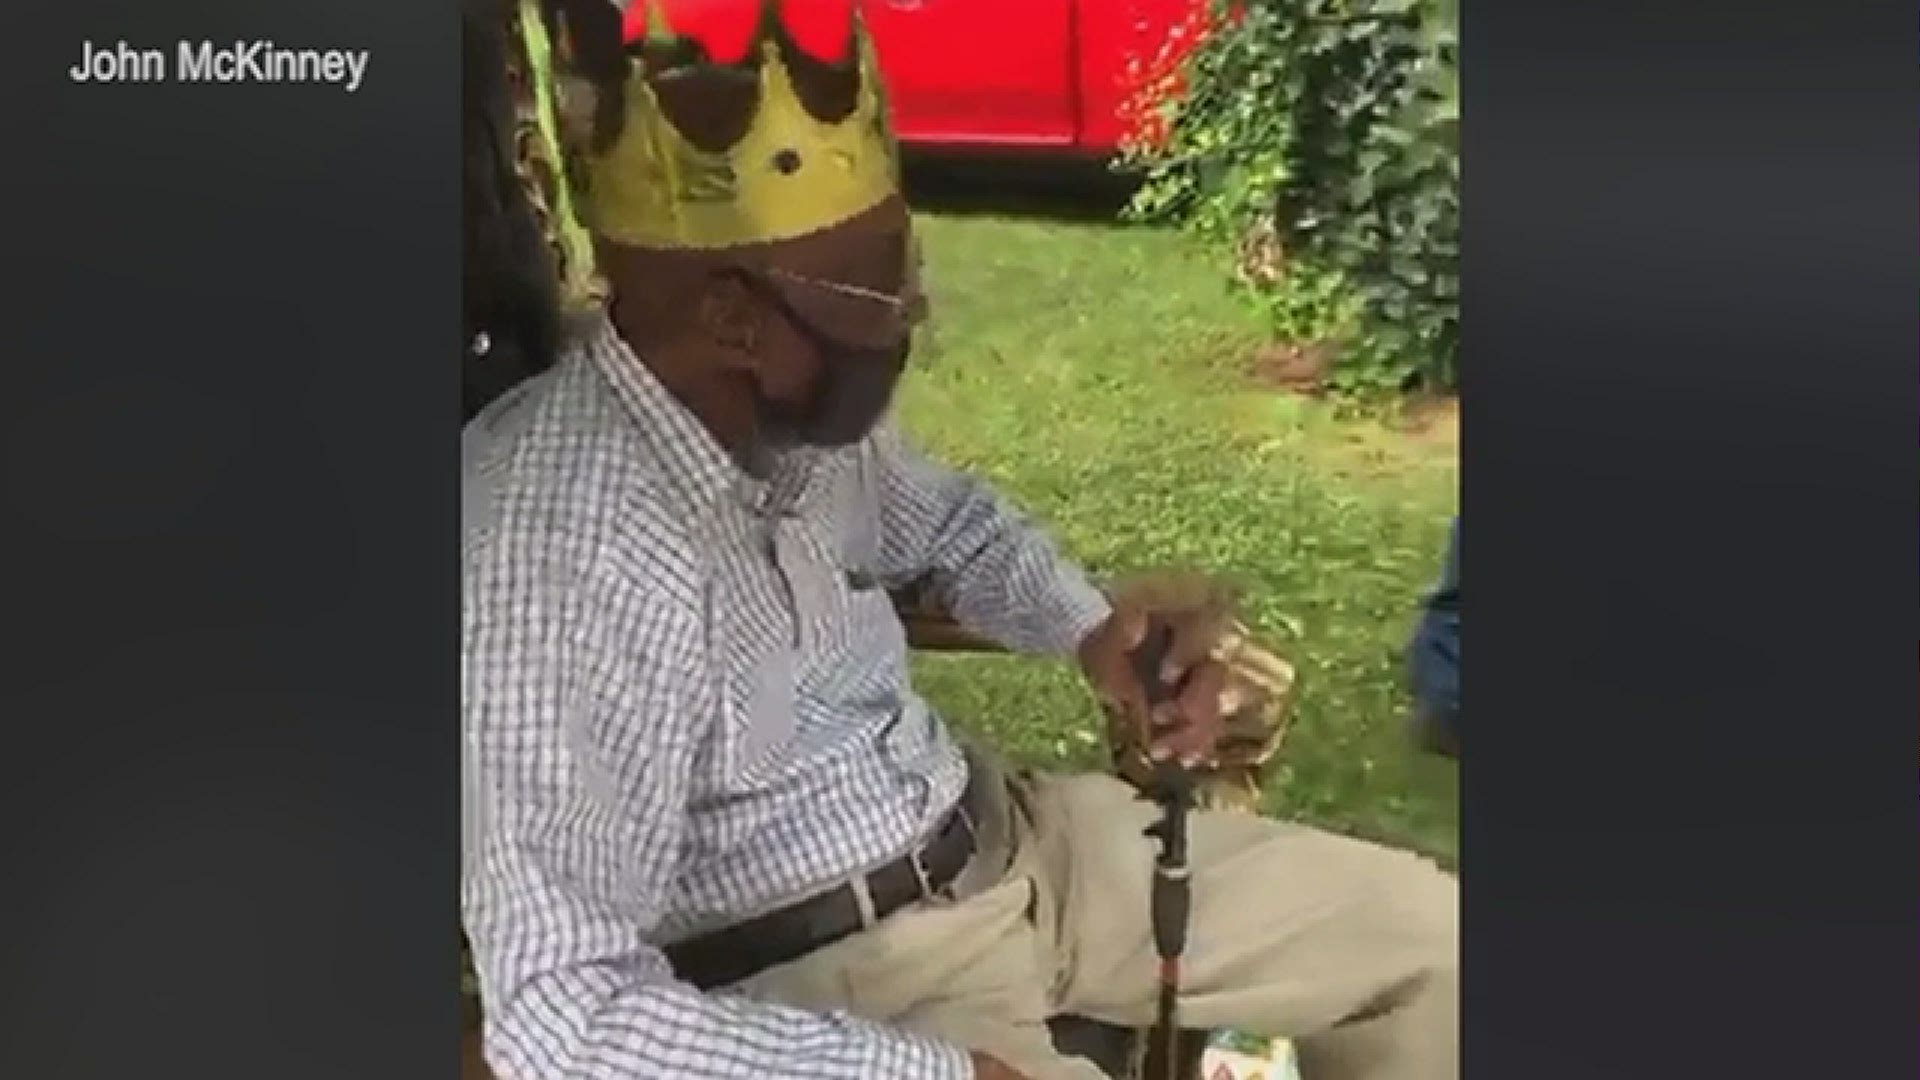 Rock Hill man turns 102 years old, dances on Tik Tok | wcnc.com